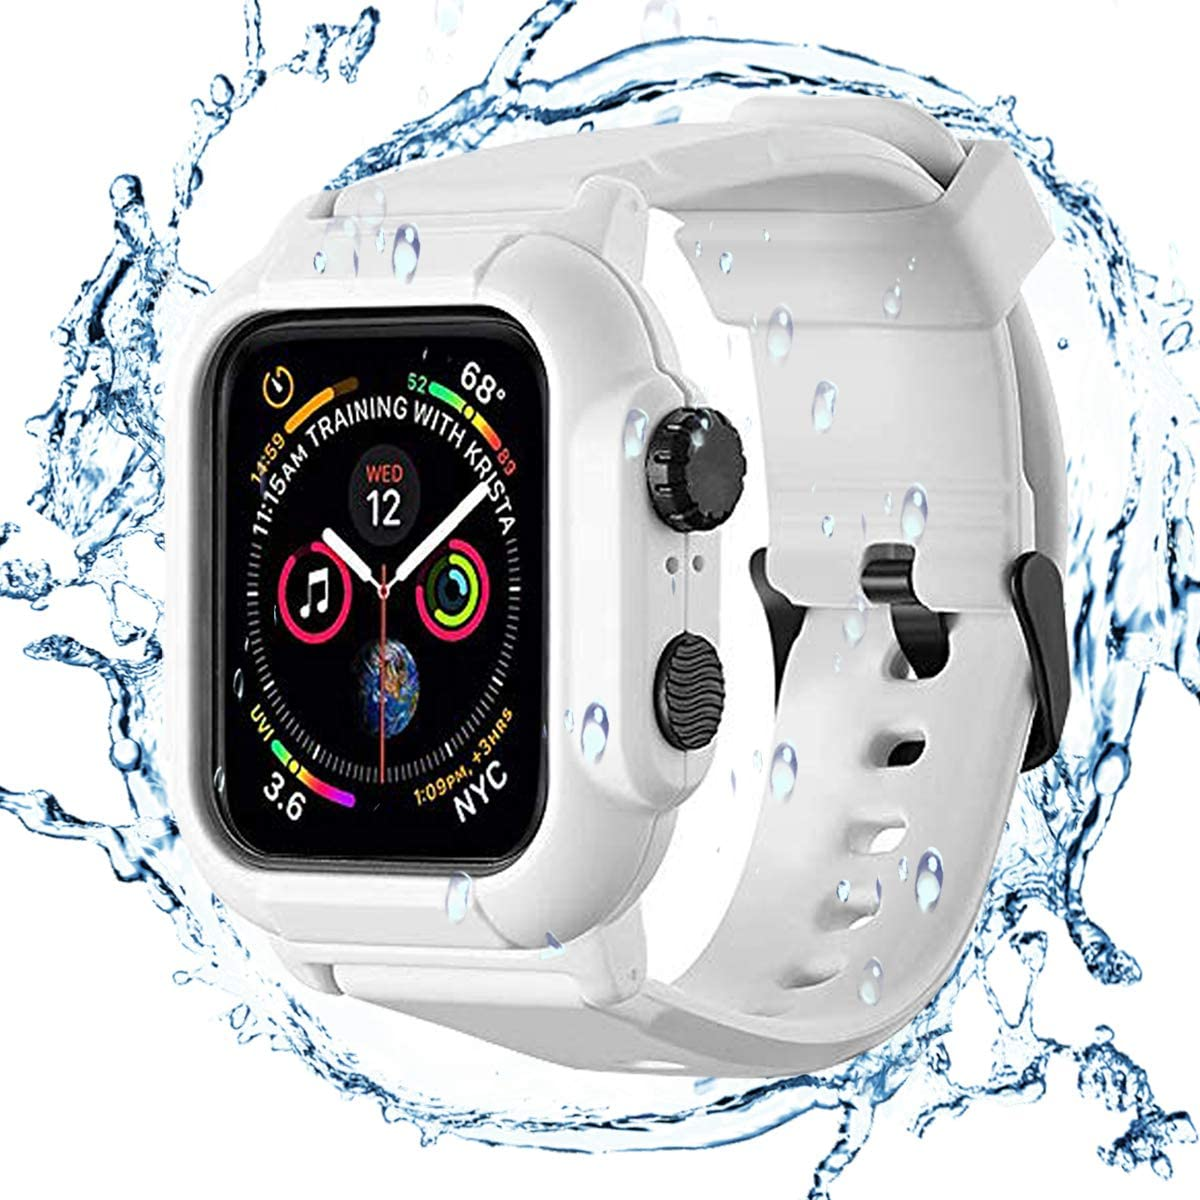 LucklyMax Waterproof Case for Apple Watch Series 4/5,Rugged Shockproof Impact Resistant 360°Protective Cover Case with Premium Soft Silicone Band Compatible with iWatch Series 5/4/3/2/1 (White, 42mm)